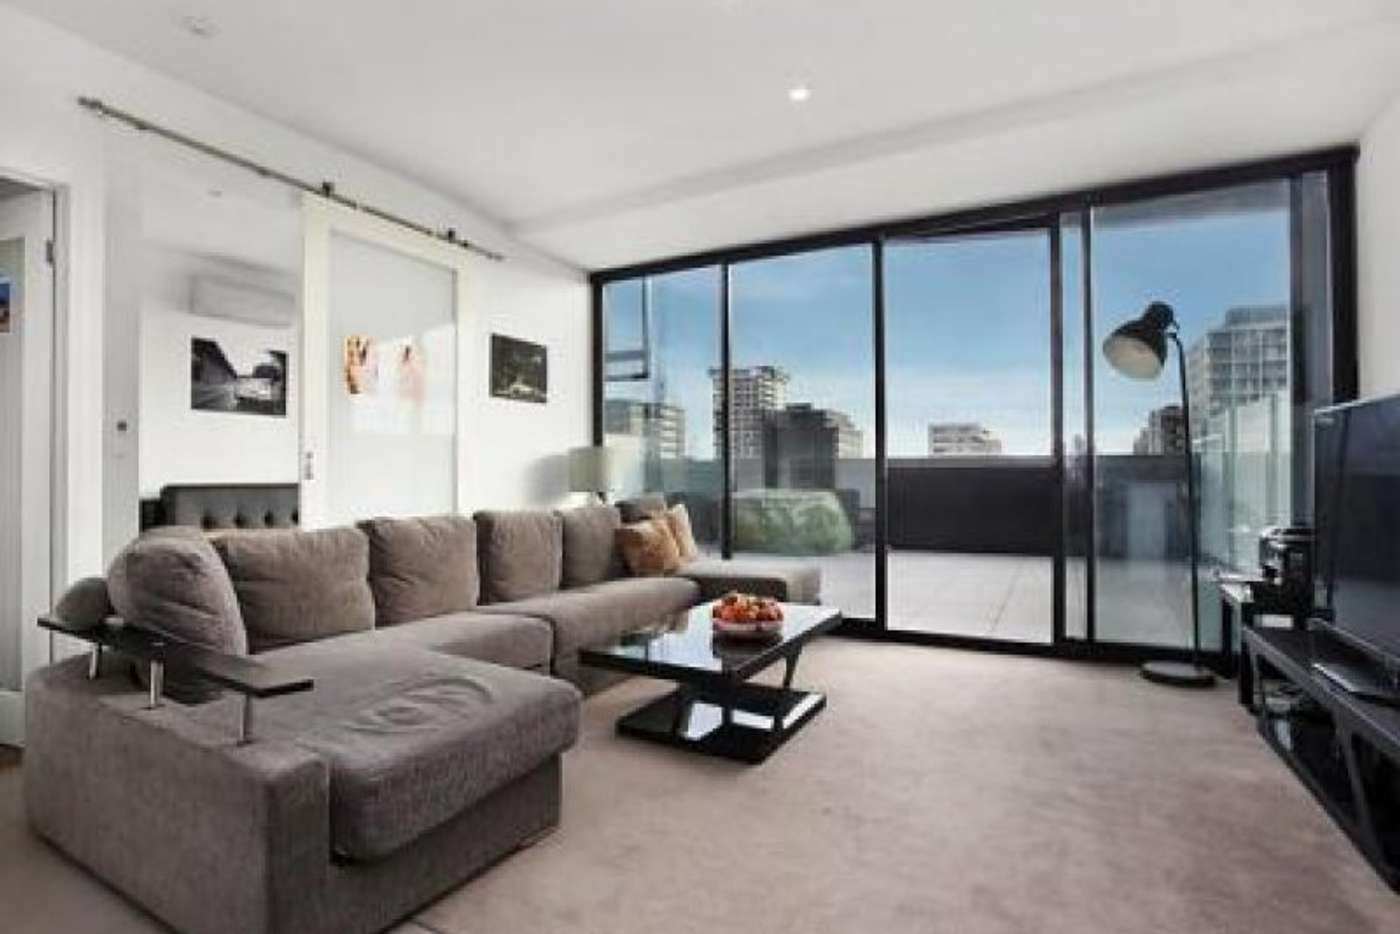 Main view of Homely apartment listing, 607/35 Malcolm Street, South Yarra VIC 3141